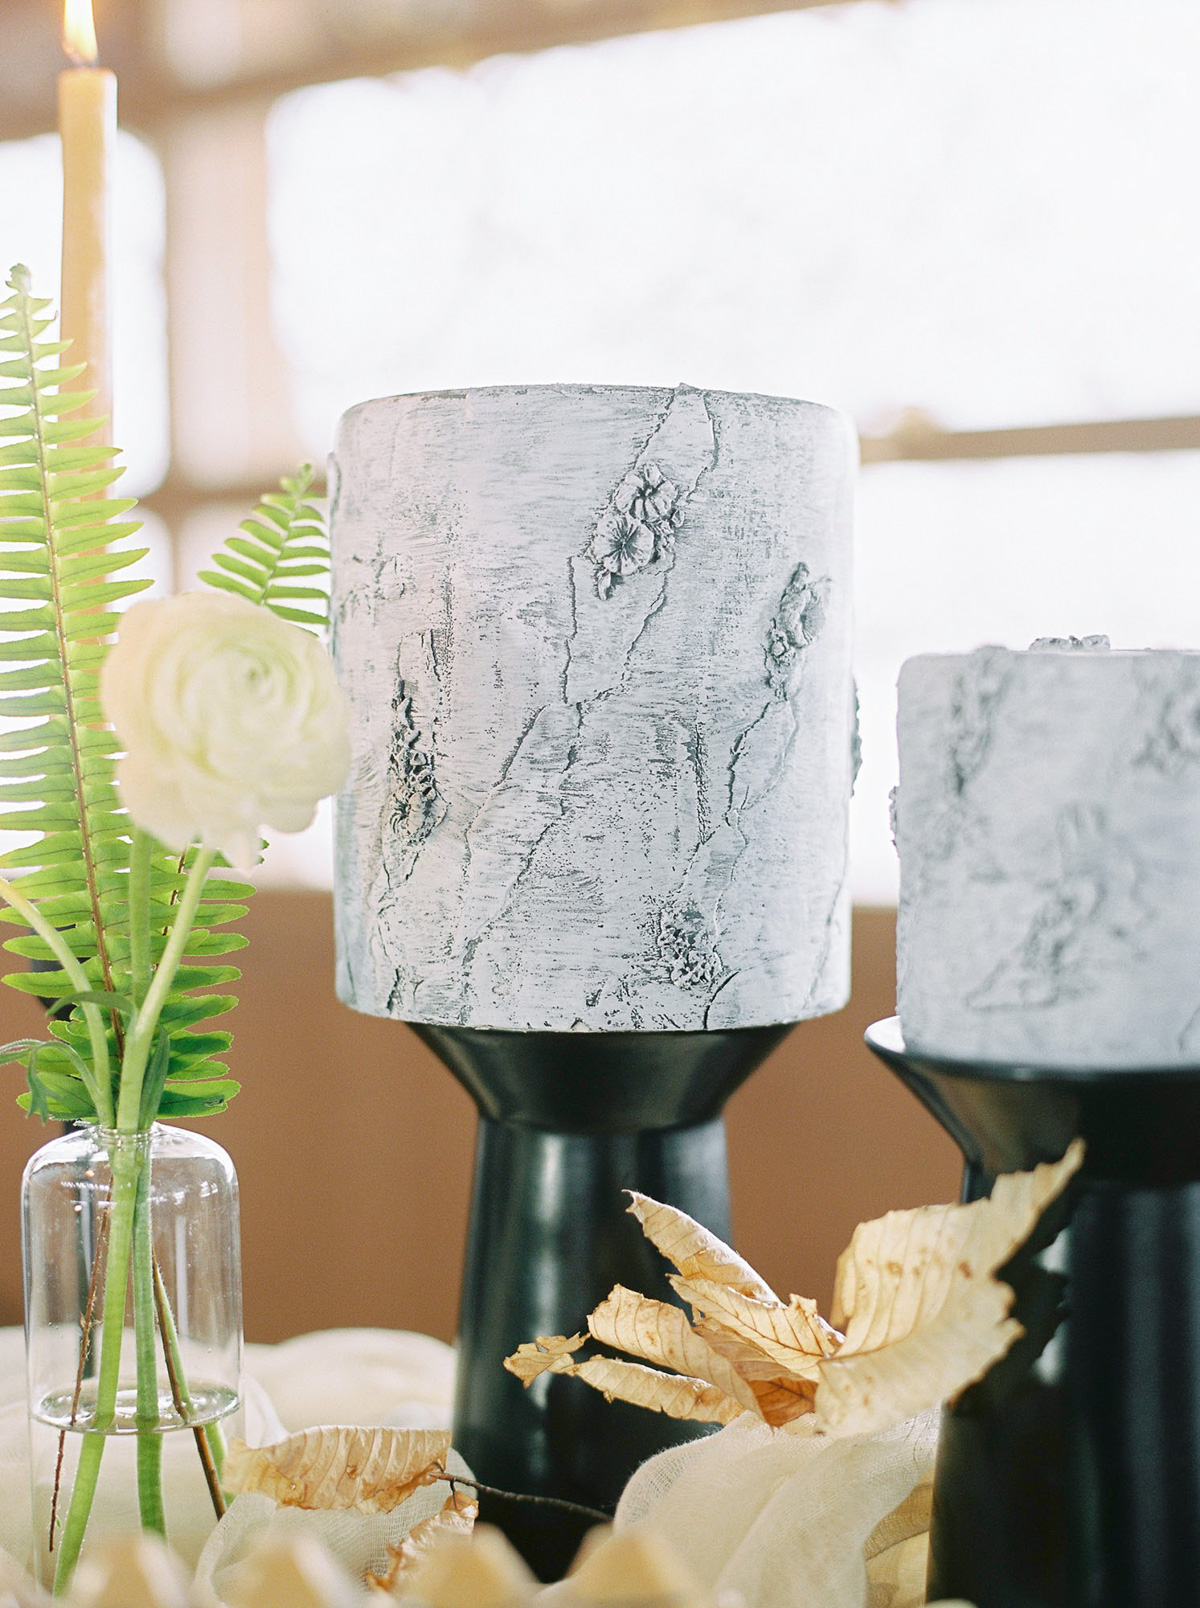 will-reid-photo-vineyard-bride-swish-list-kurtz-orchards-market-niagara-on-the-lake-wedding-editorial-41.jpg